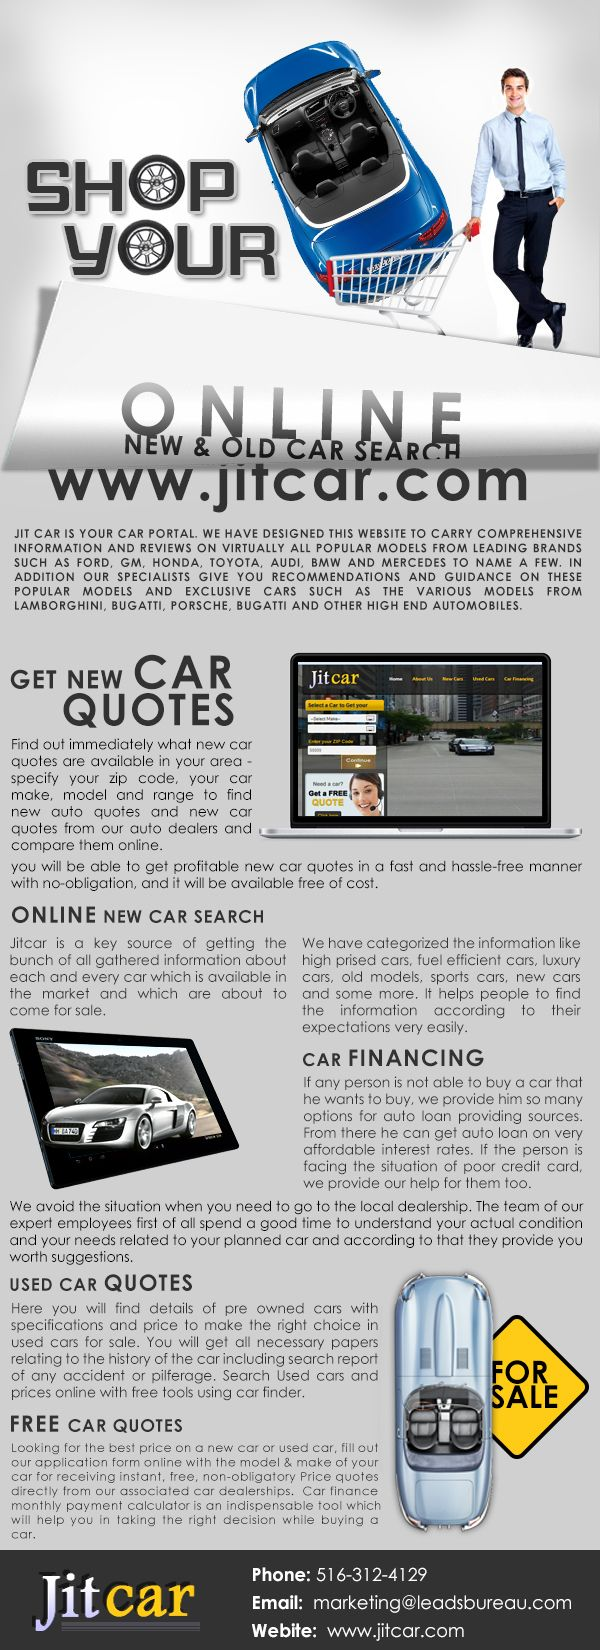 New Car Quotes Get New Car Quotes Free Auto Quote Online New Car Quotes Online